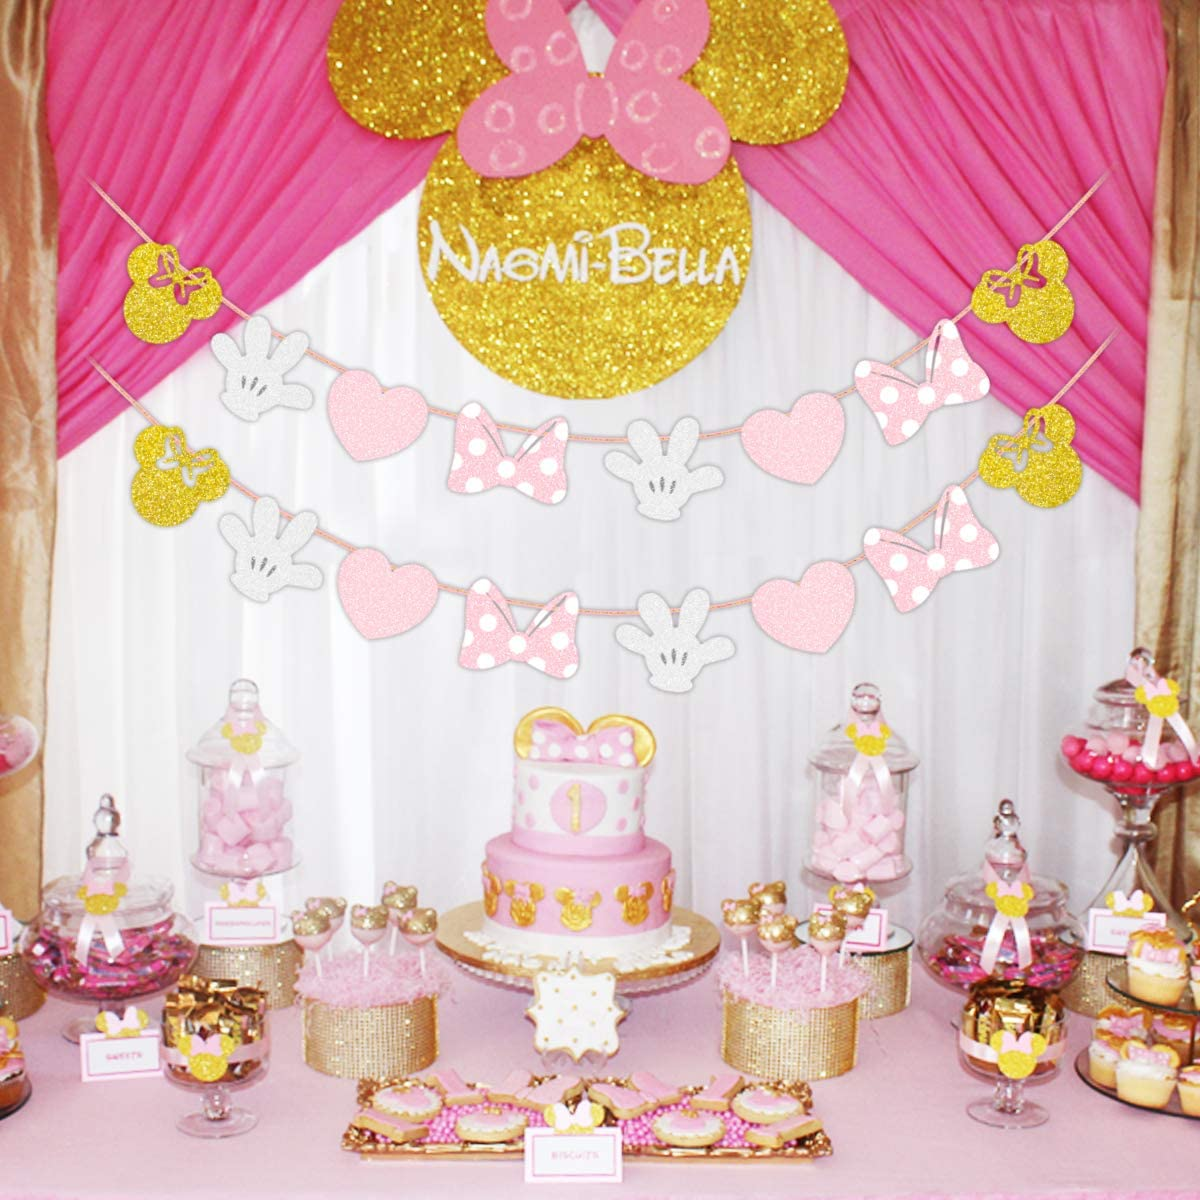 GIRLS 3rd BIRTHDAY BANNER PARTY BUNTING DECORATION PINK AND GOLD